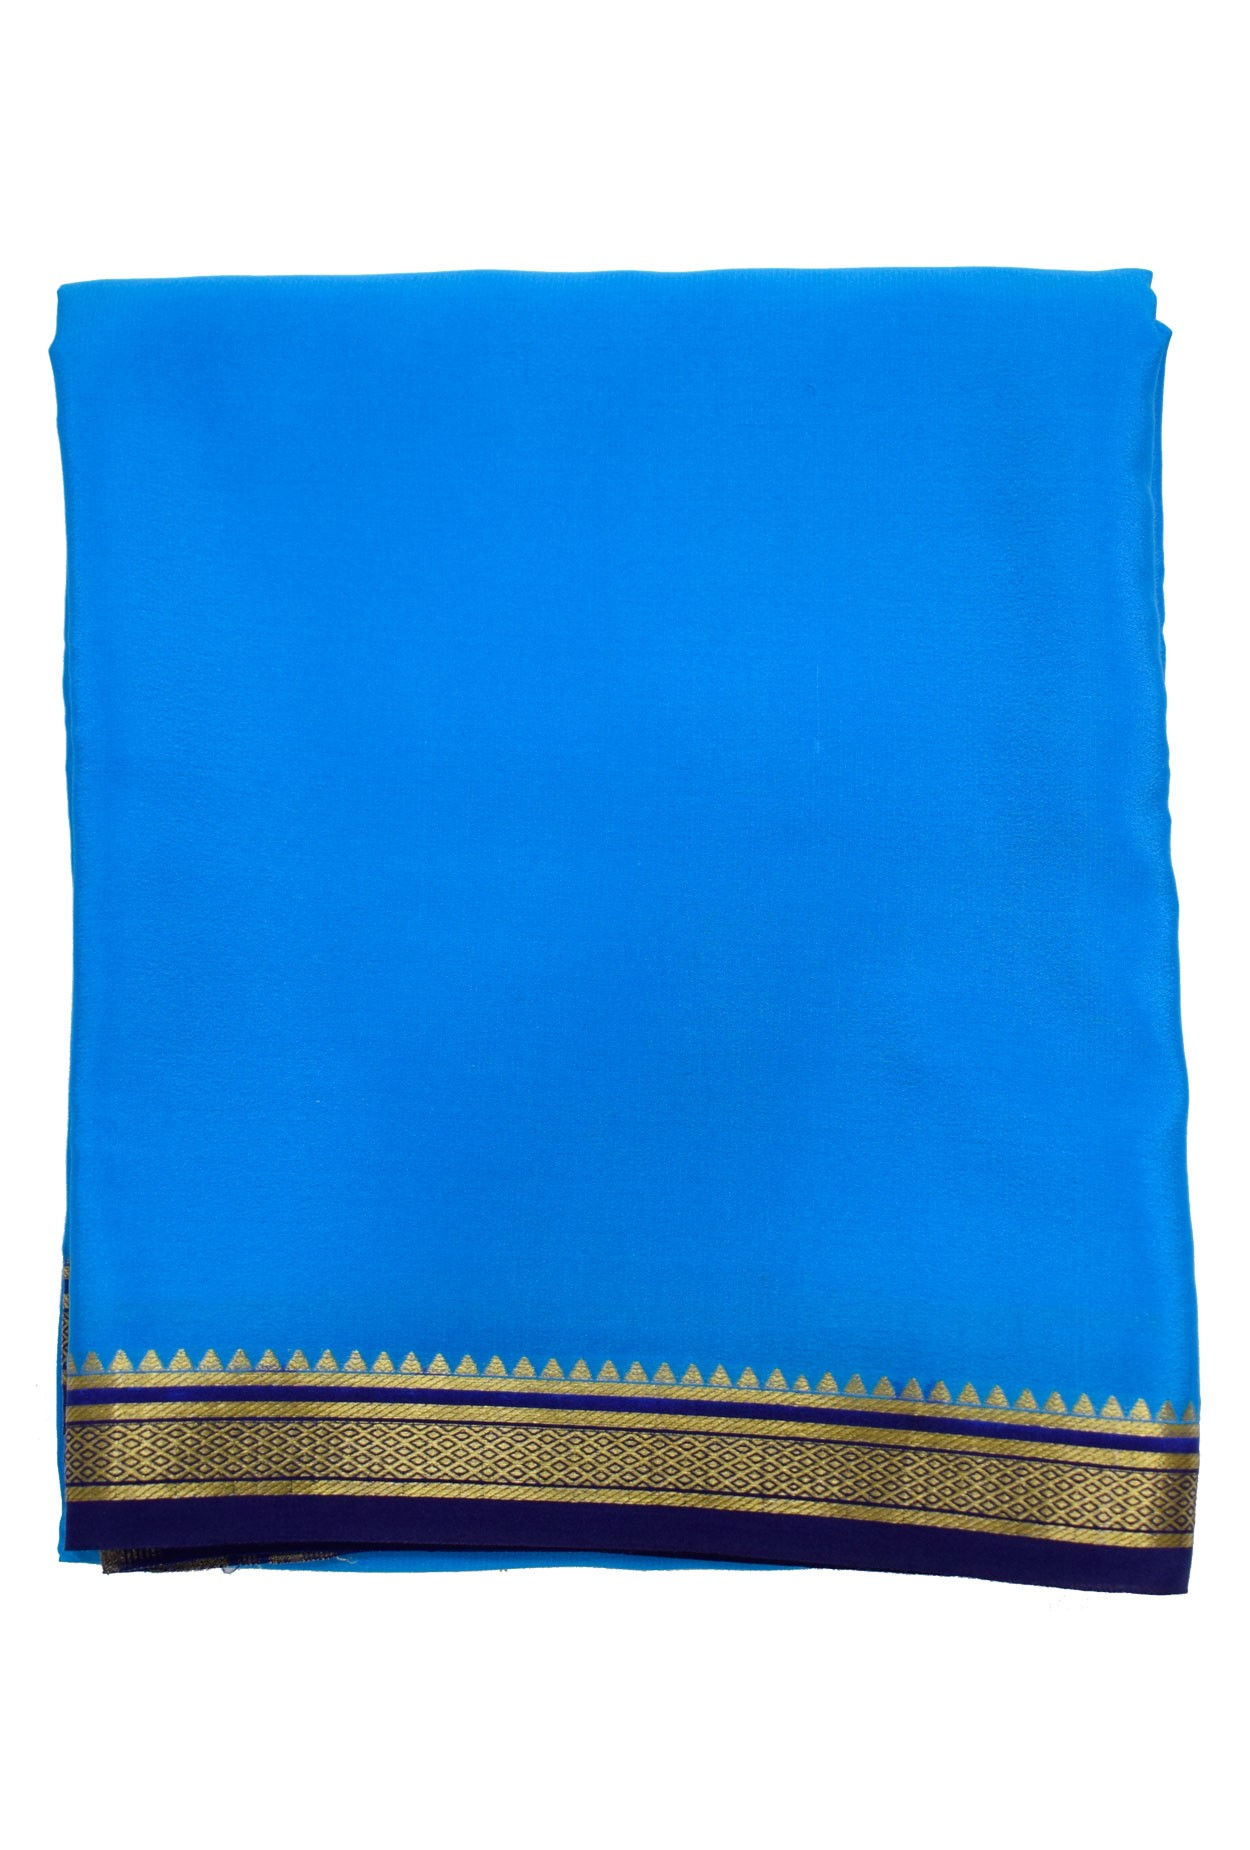 100% Pure Crape Mysore Traditional Silk Saree SC38